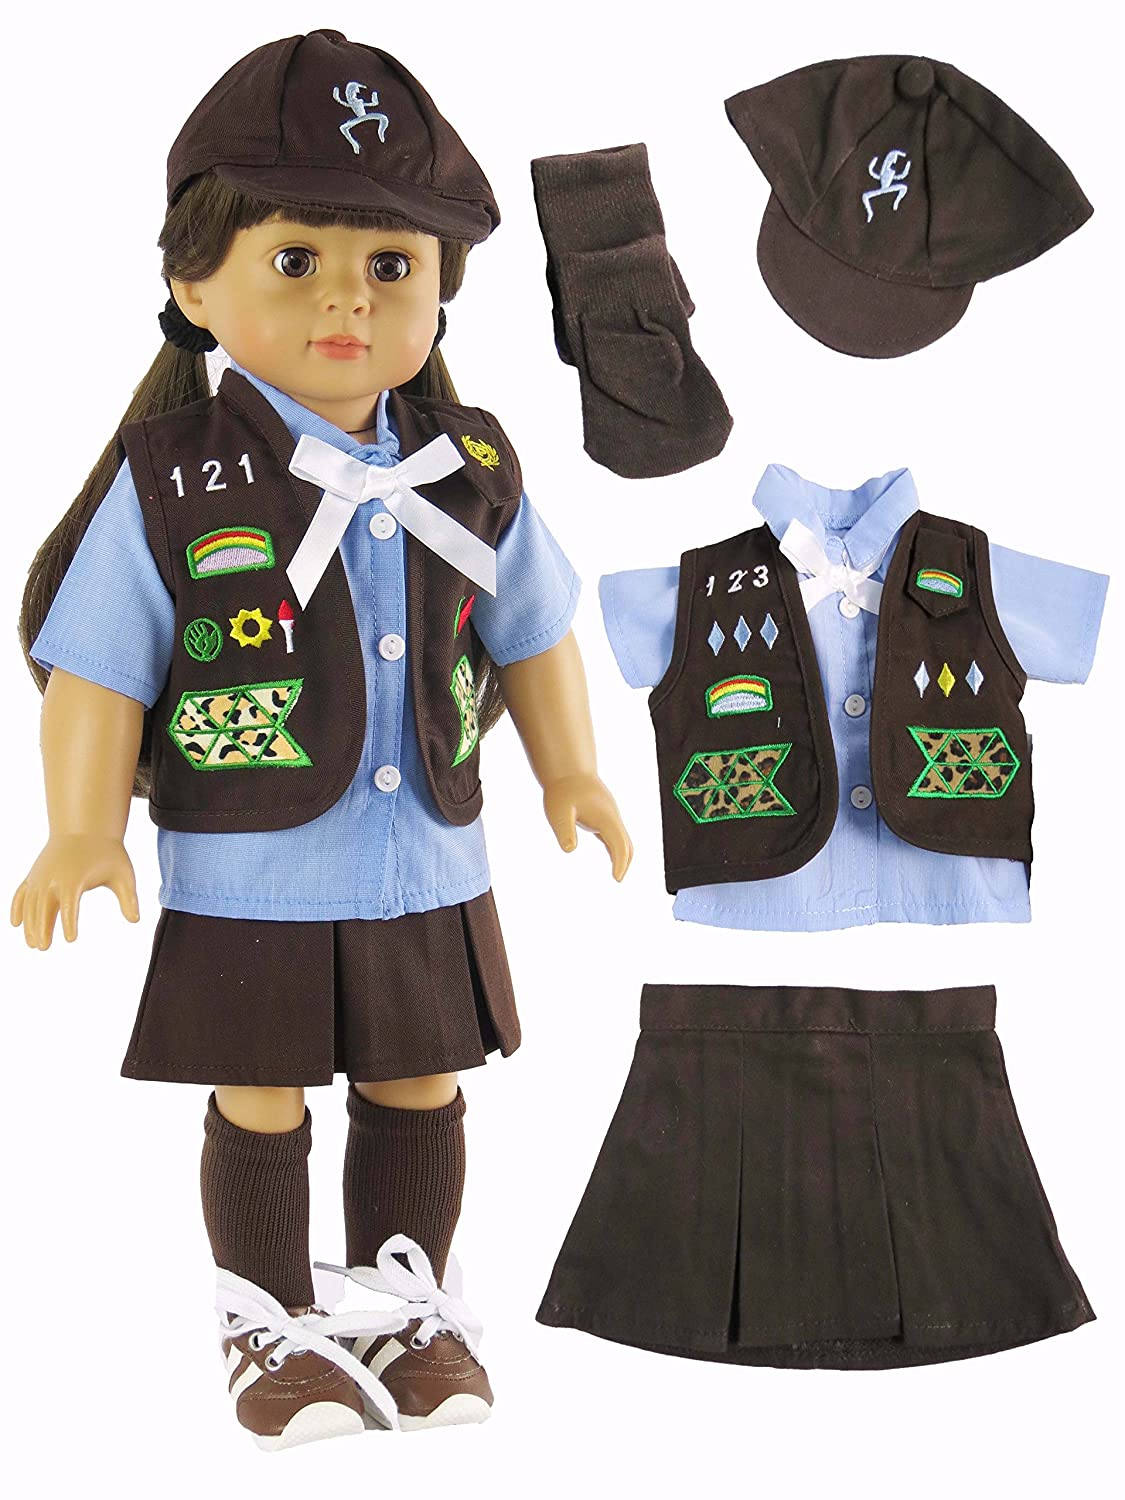 18 Inch Doll Clothes Fits 18 American Girl Dolls Made such as American Girl Madame Alexander Our Generation American Fashion World Girl Scout Brownie Outfit etc